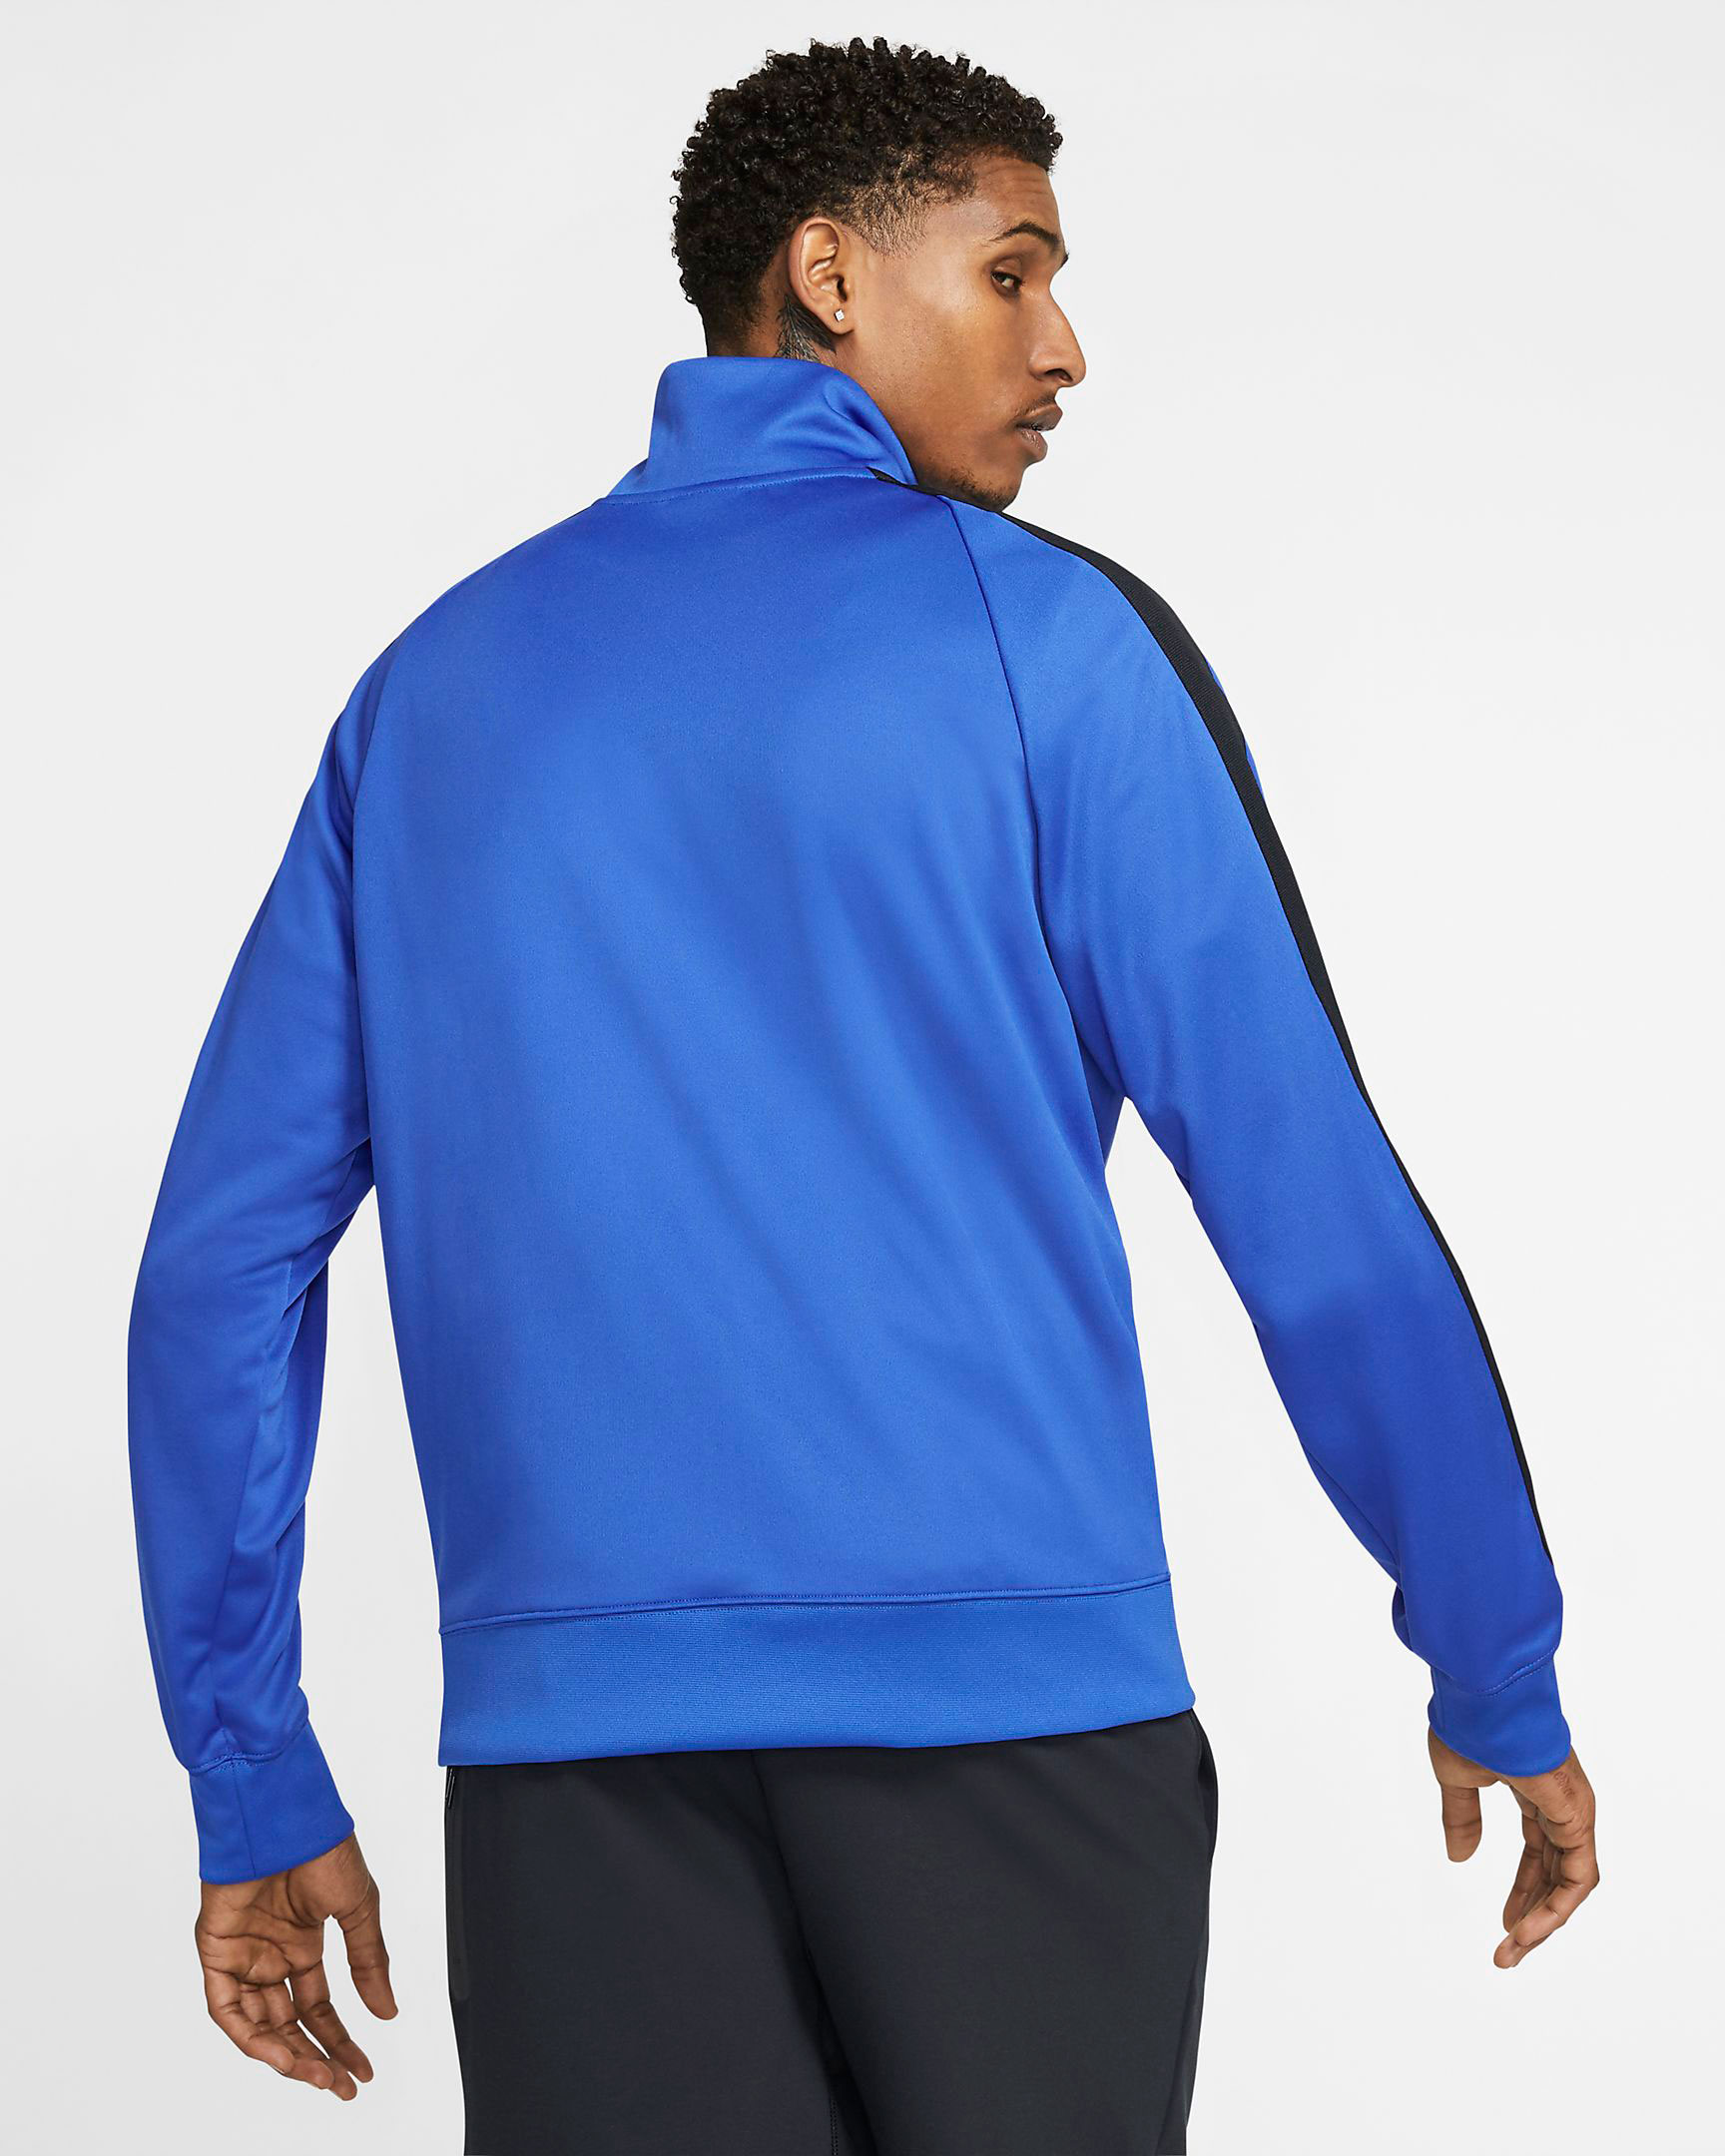 jordan-14-hyper-royal-blue-nike-track-jacket-match-3